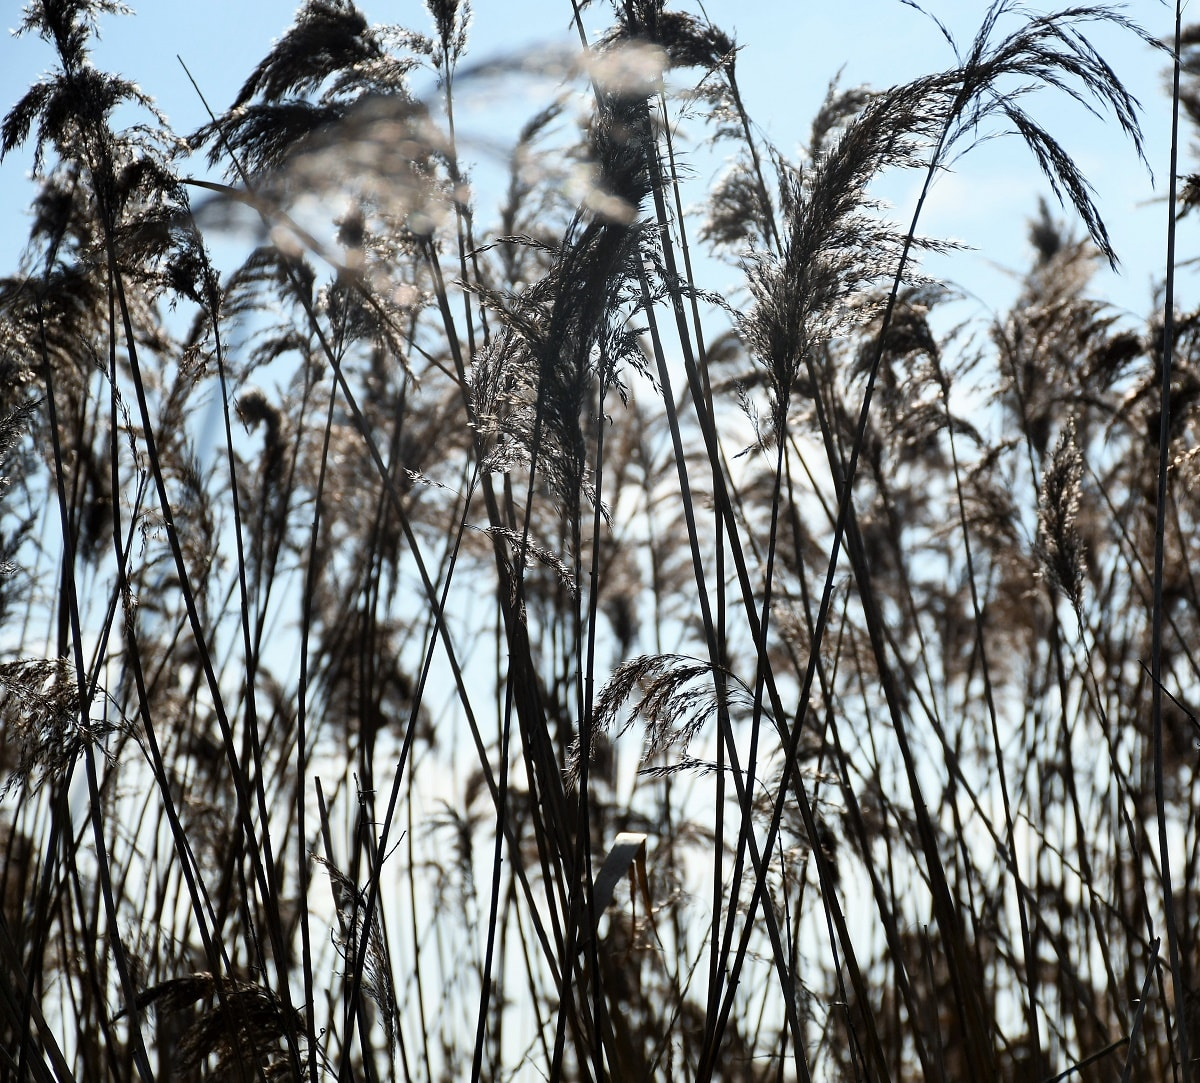 """River grass. Featured in Jun'icho Tanizaki's """"In Praise of Shadows"""" in the Examined Life Library."""